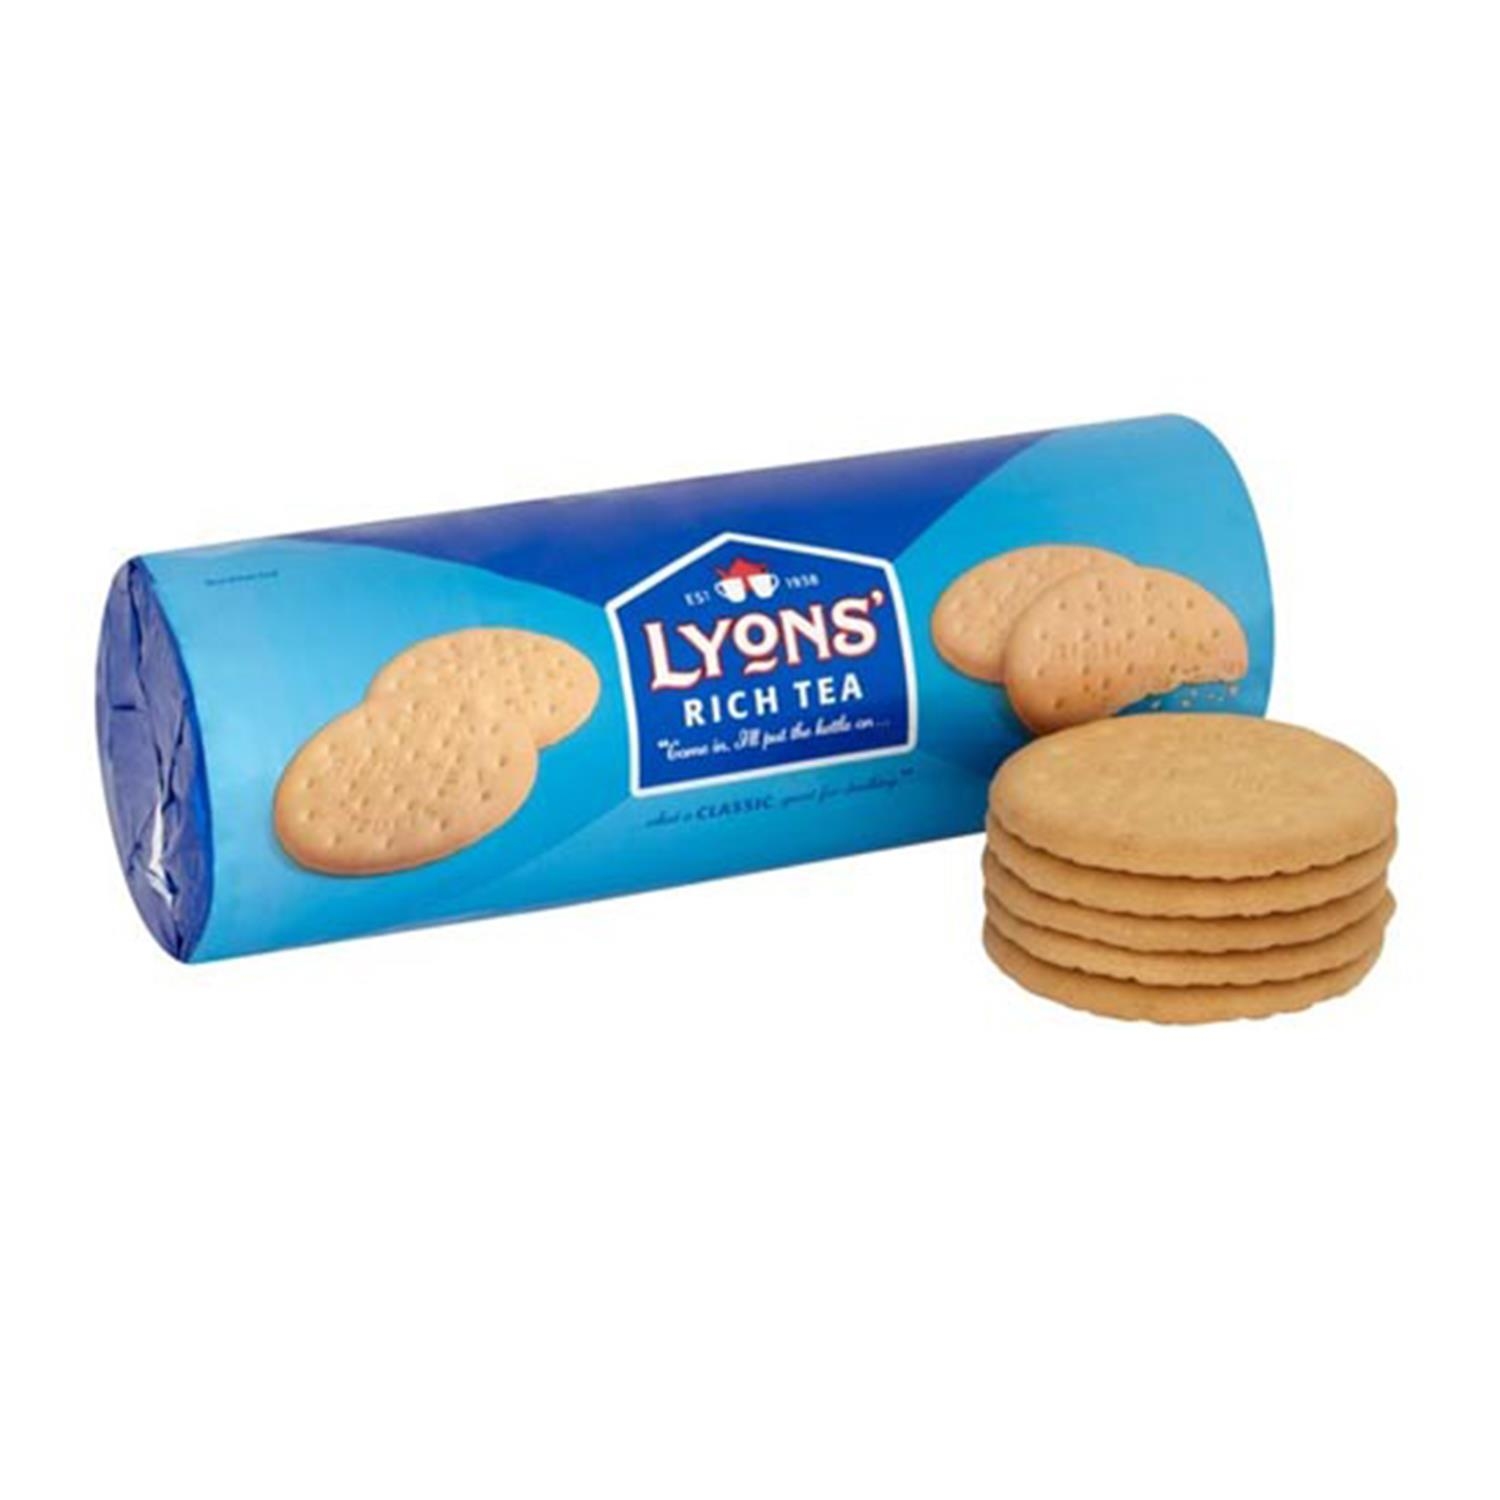 thumbnail 4 - Lyons Rich Tea Biscuits 300g, Great for a morning or afternoon snack